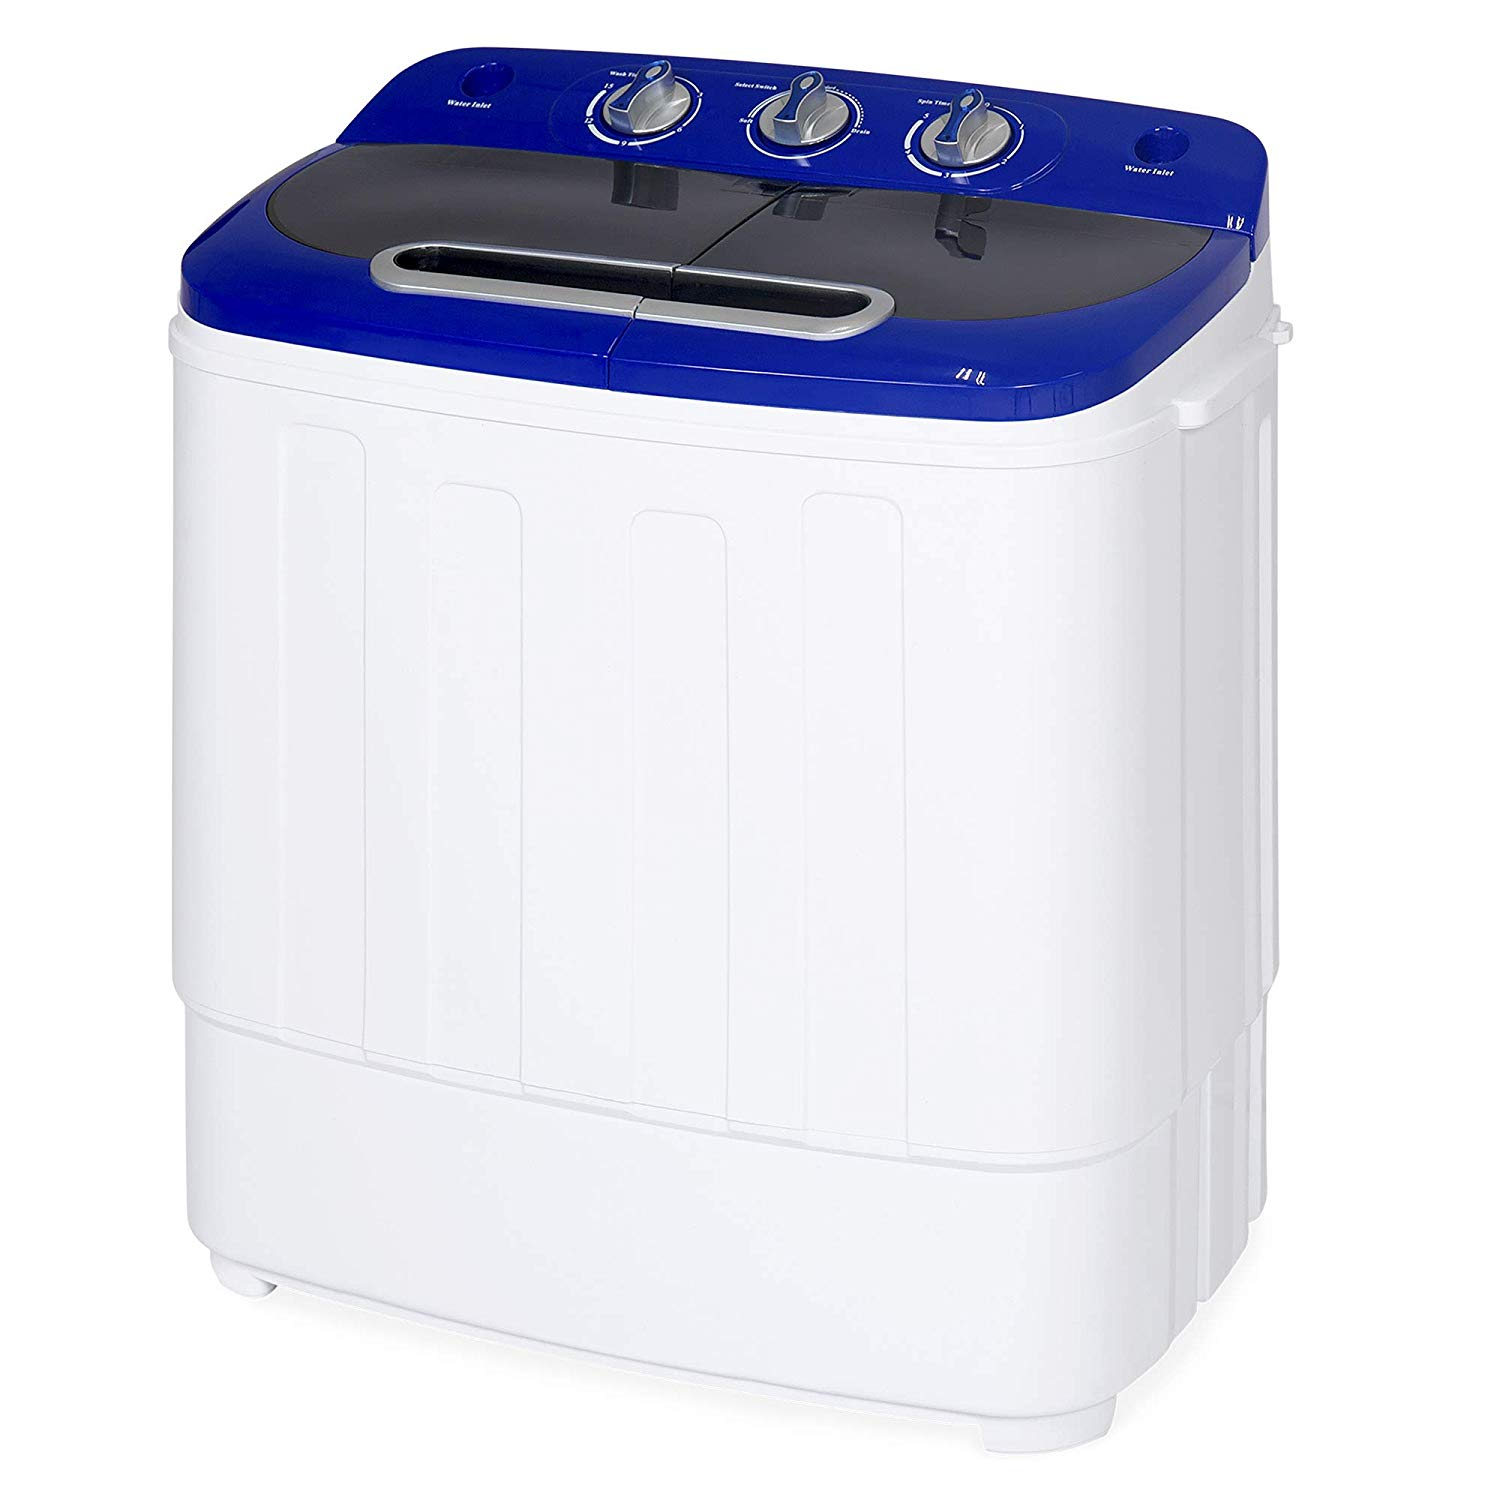 Best Choice Products Portable Compact Twin Tub Laundry Machine & Spin Cycle w/Hose, 13lbs Capacity - White/Blue